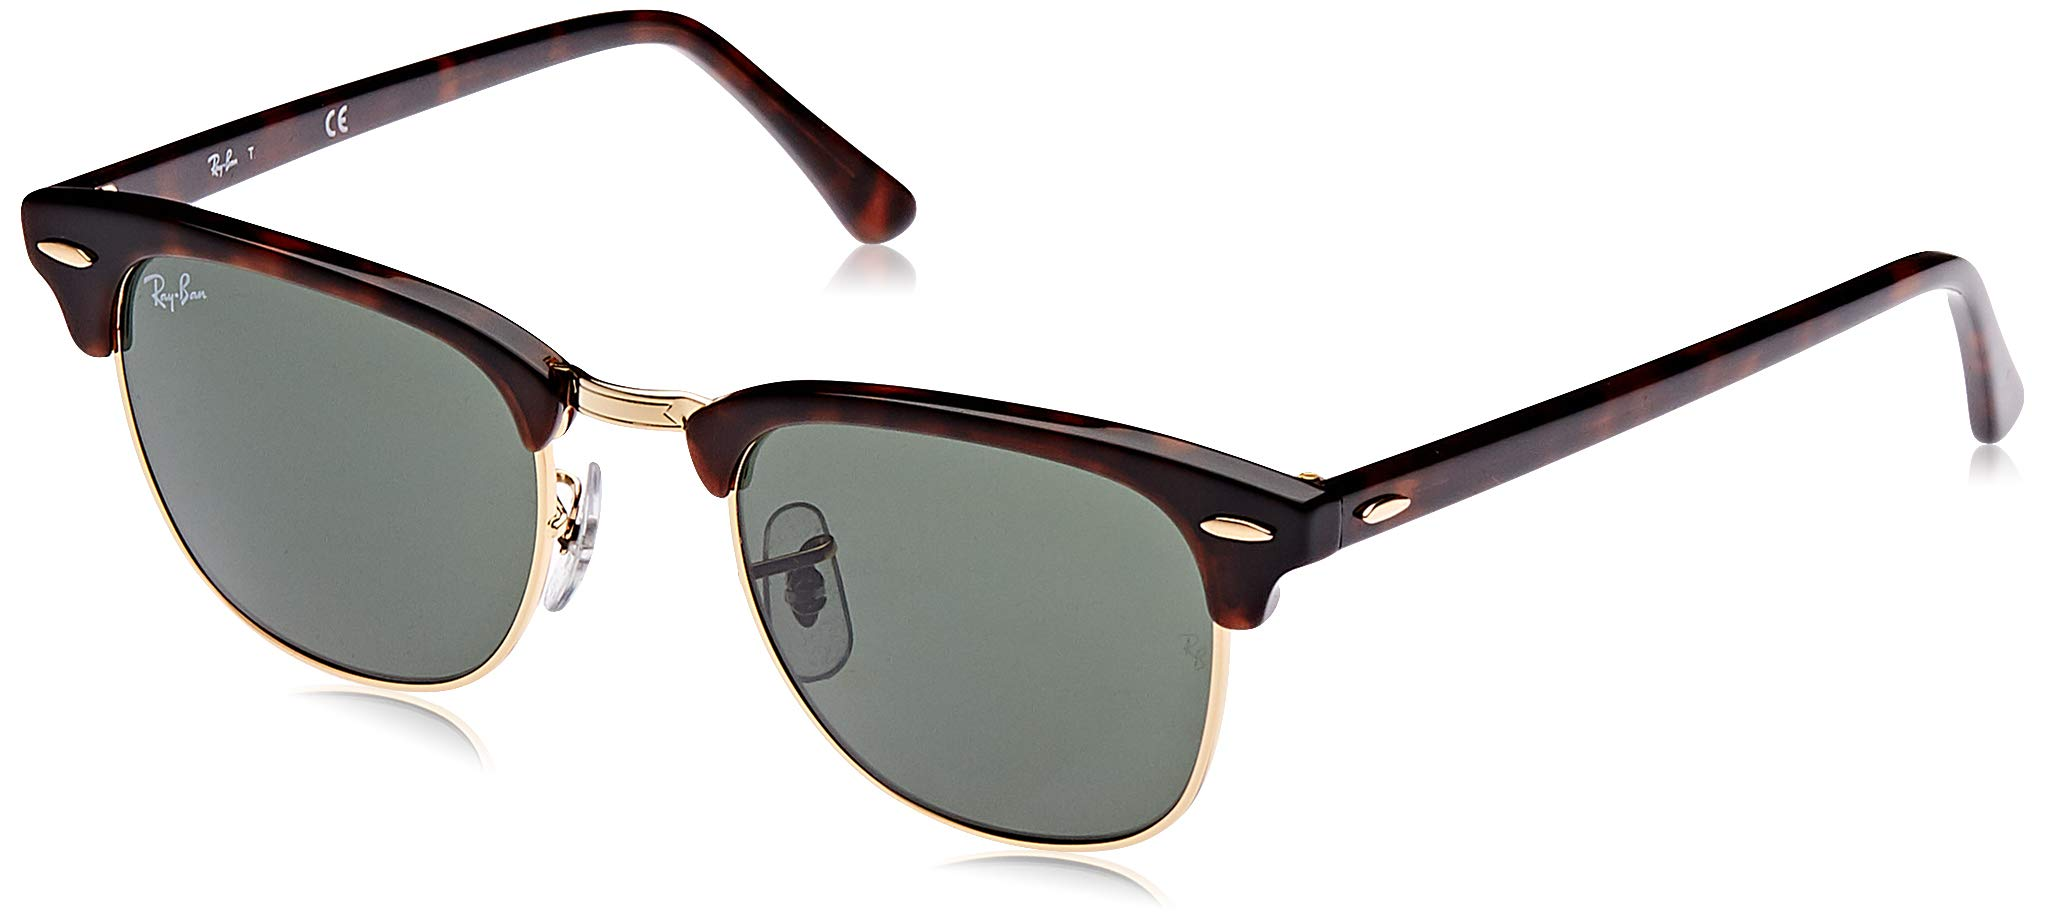 RAY-BAN RB3016 Clubmaster Square Sunglasses, Mock Tortoise Gold/Green, 49 mm by RAY-BAN